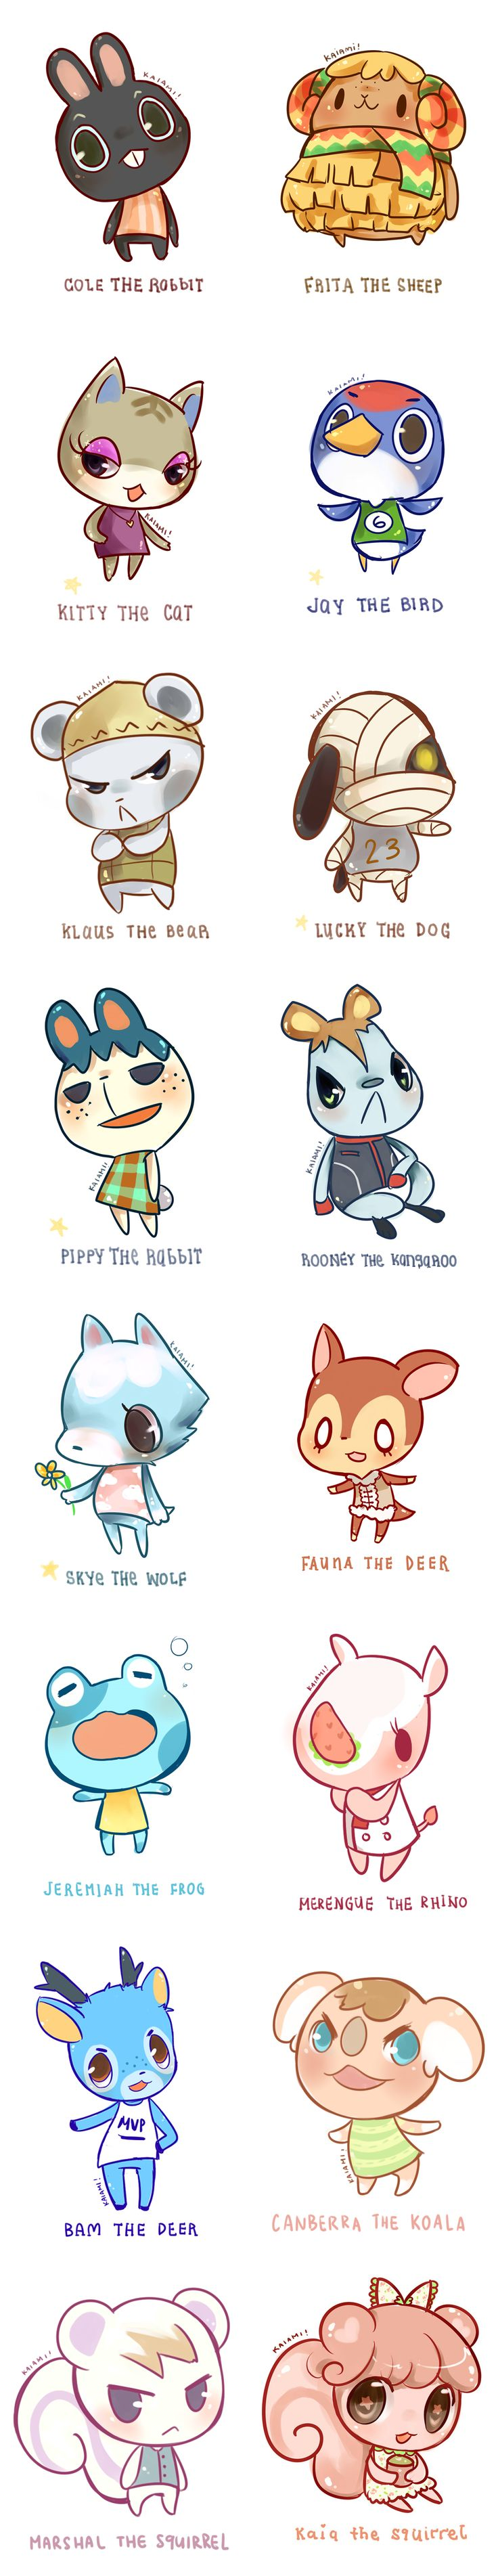 148 best images about Animal Crossing: New Leaf on ...